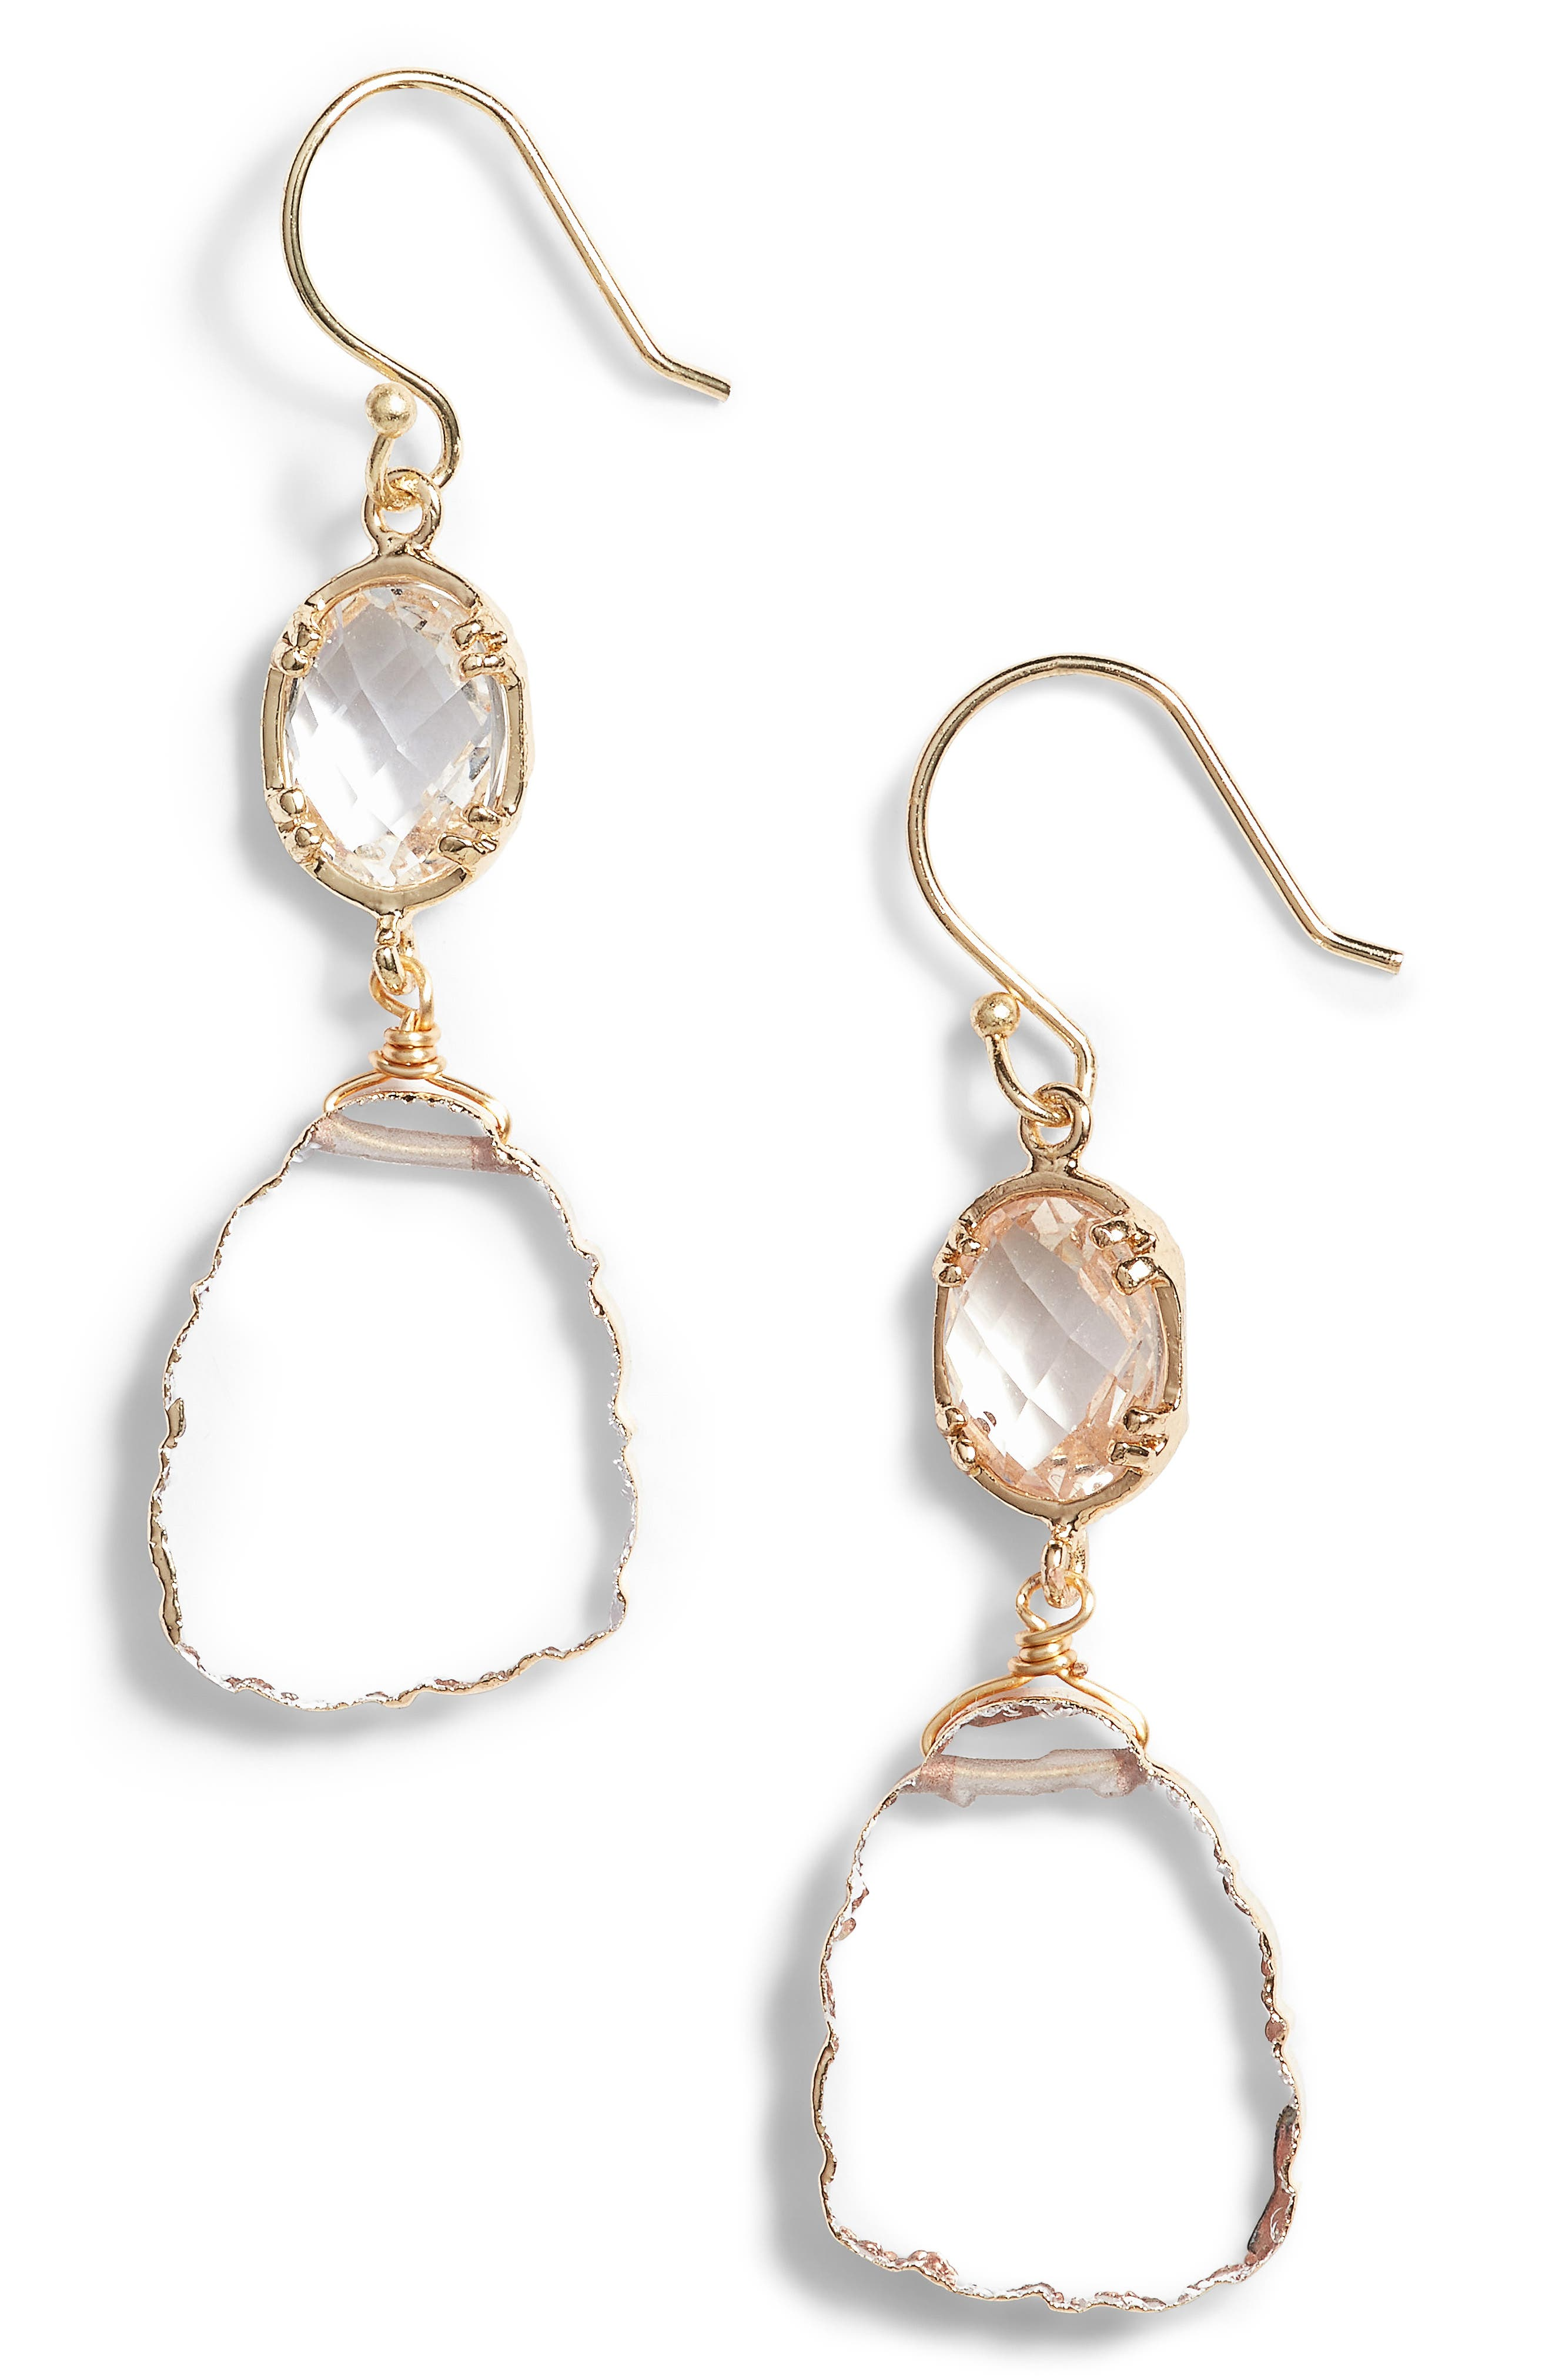 Double Drop Earrings,                         Main,                         color, Gold/ Clear